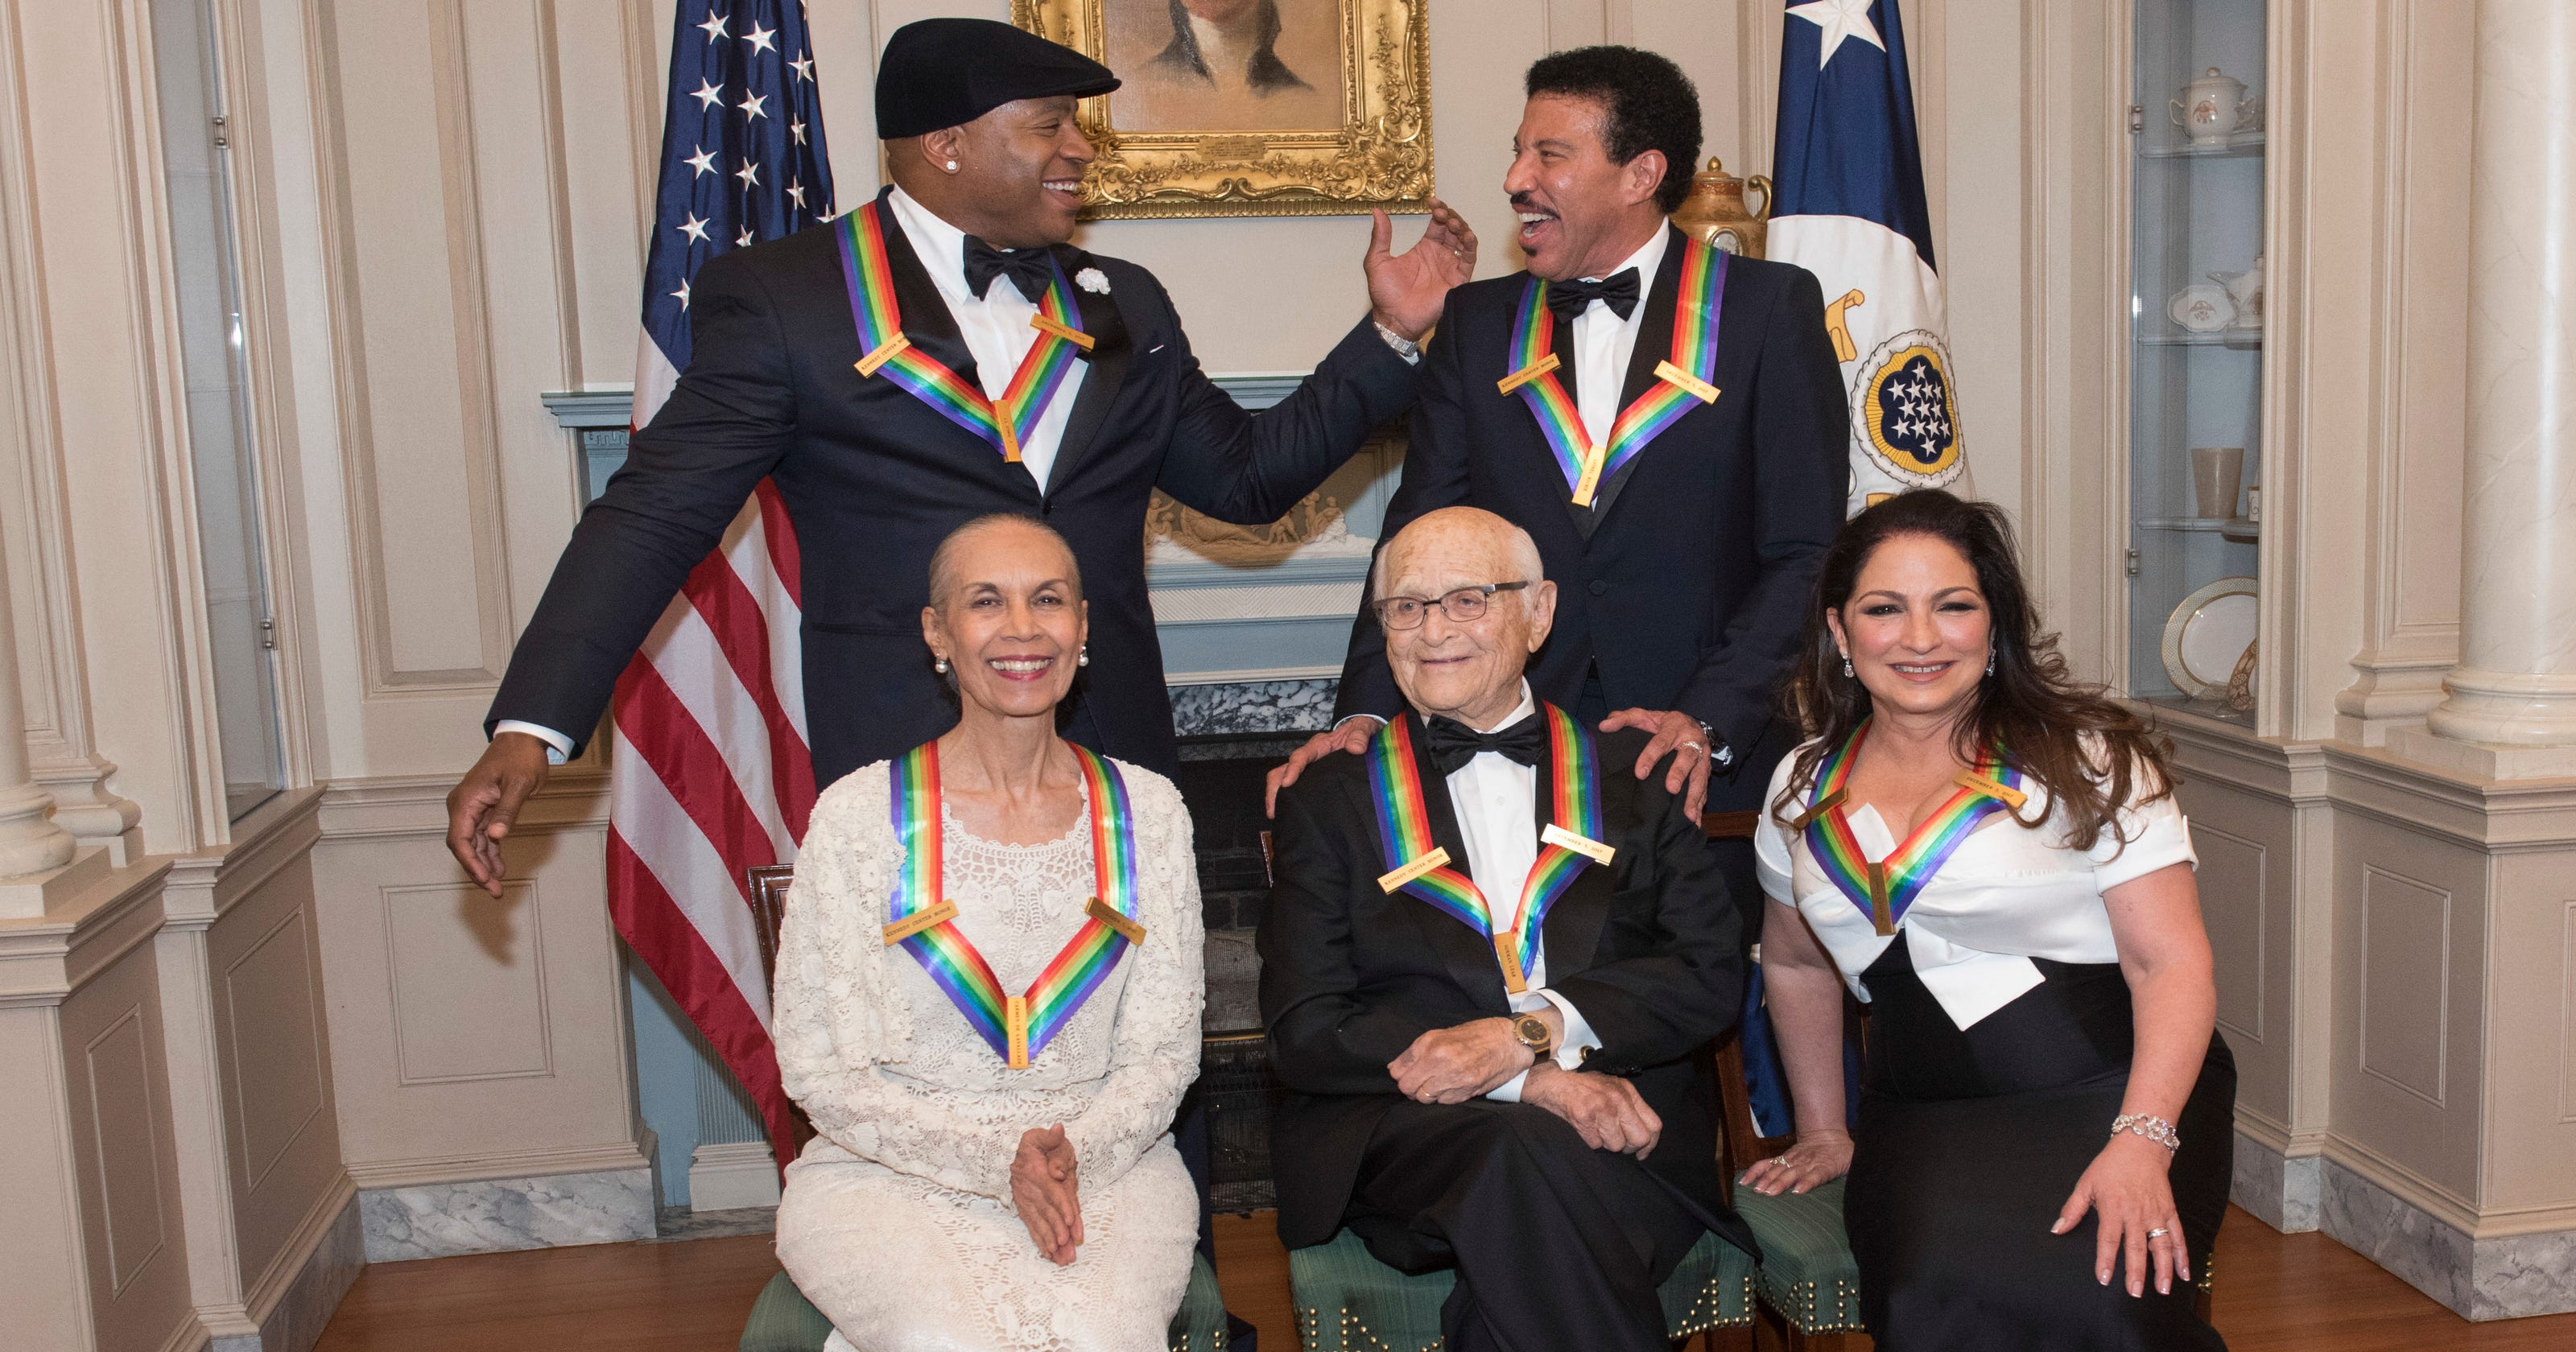 No Trumps No Problems At 2017 Kennedy Center Honors